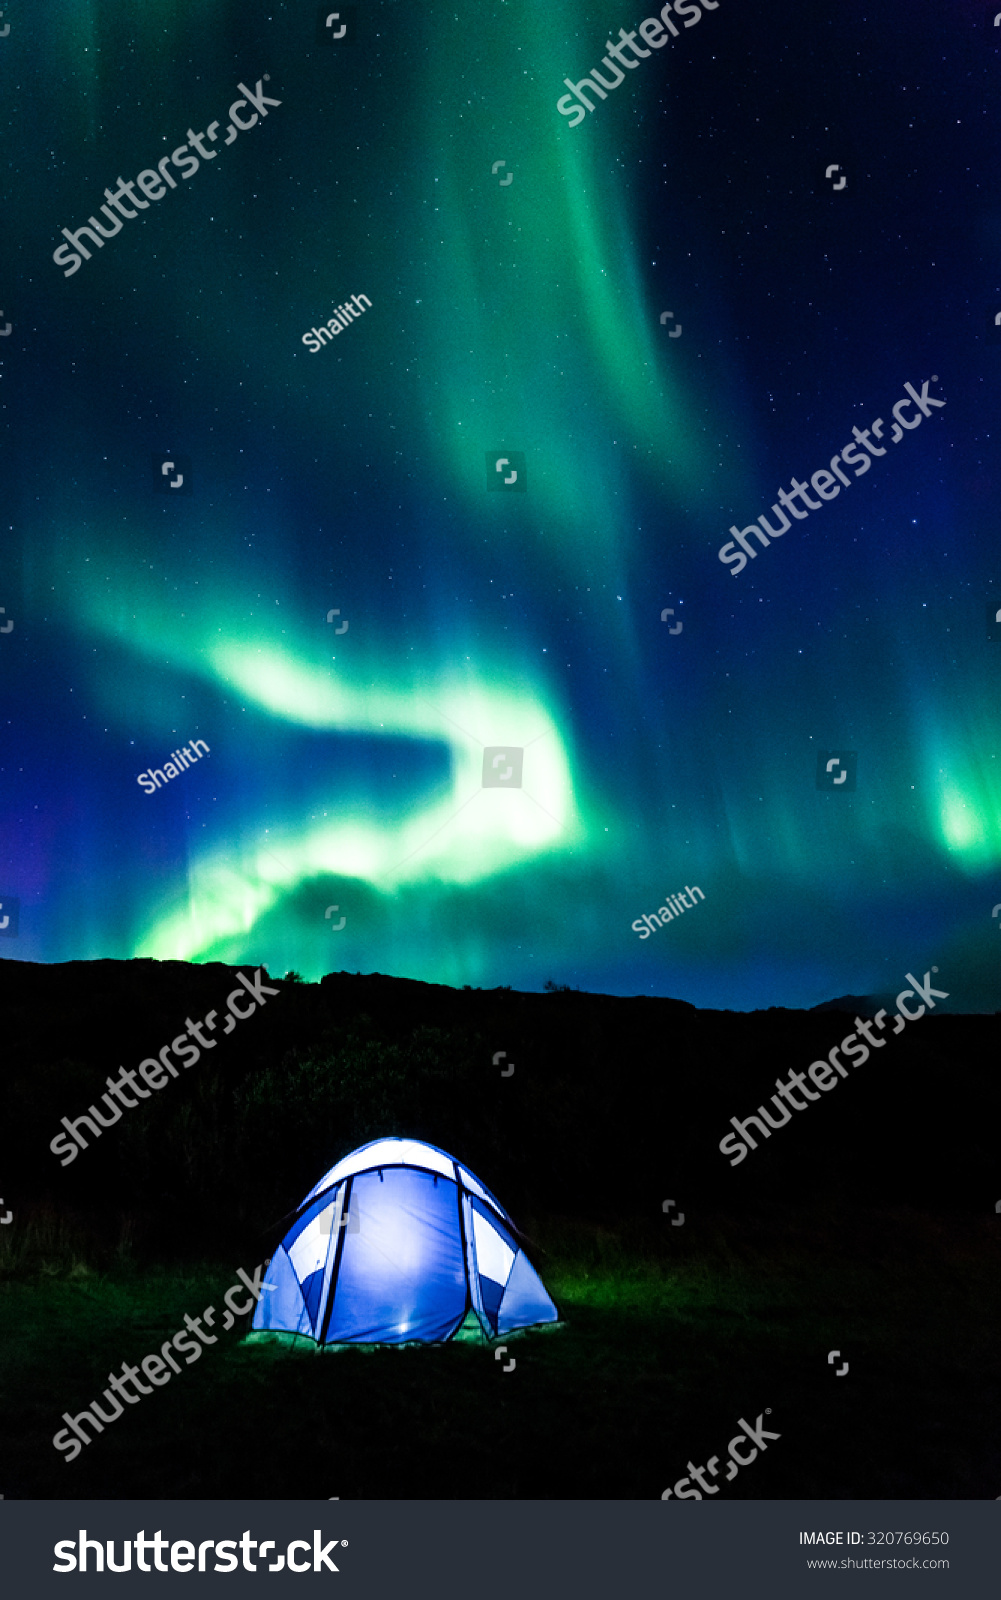 Illuminated tent and aurora in Iceland & Illuminated Tent Aurora Iceland Stock Photo 320769650 - Shutterstock